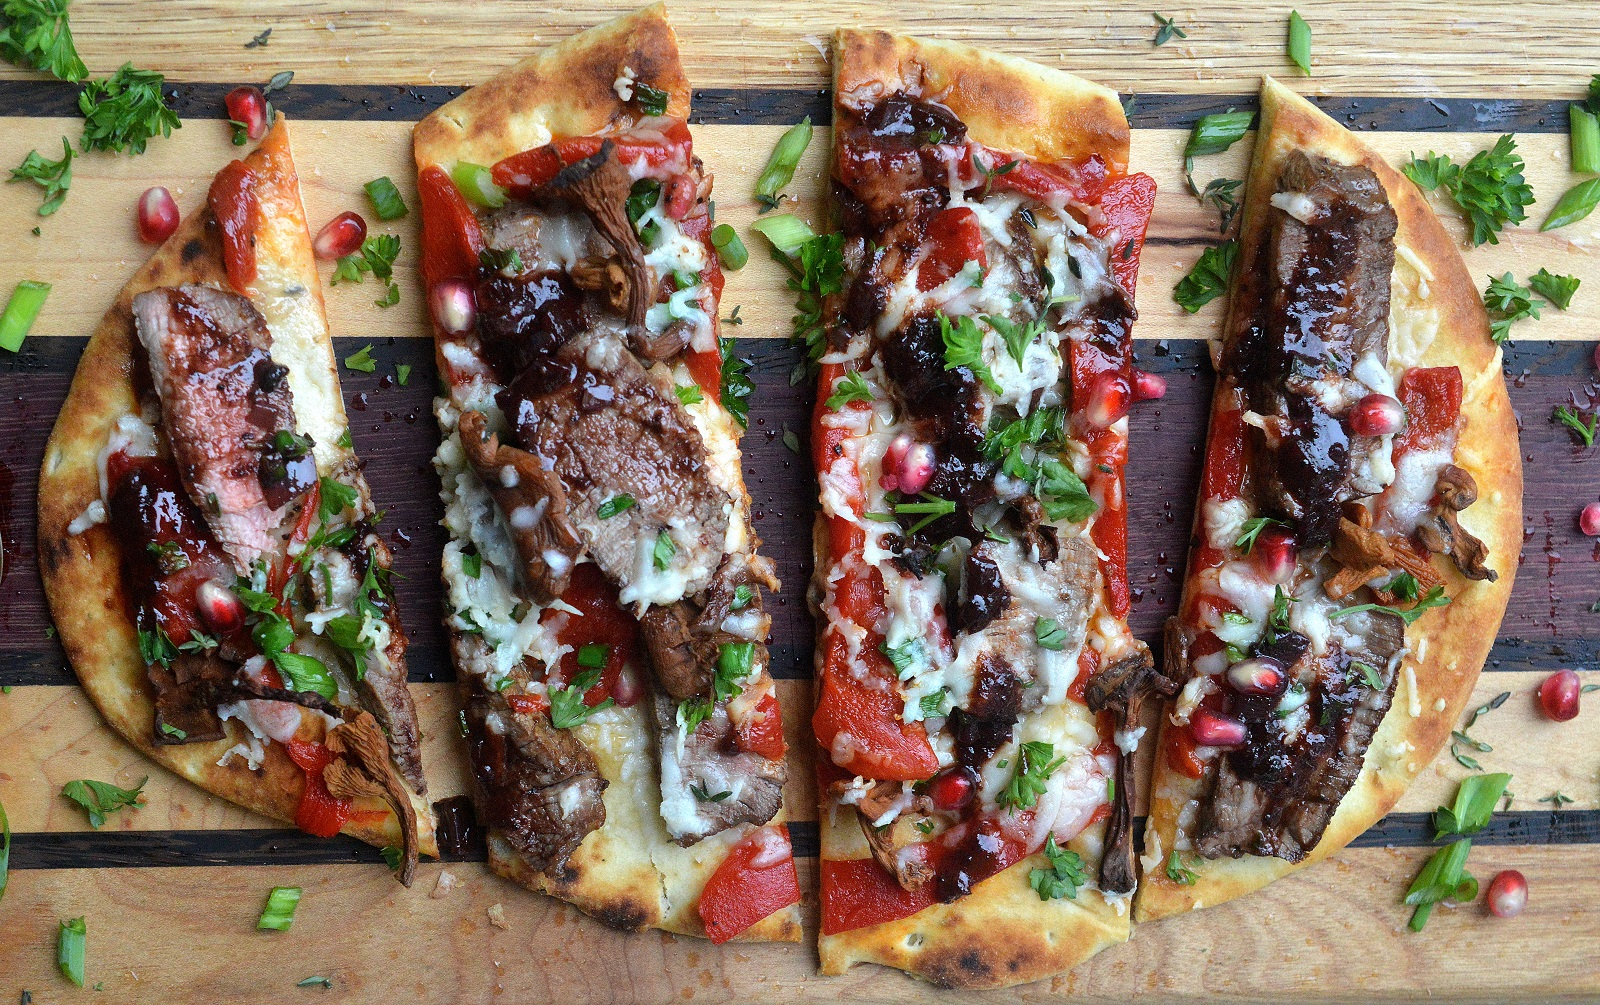 Steak & Roasted Red Pepper Flatbread